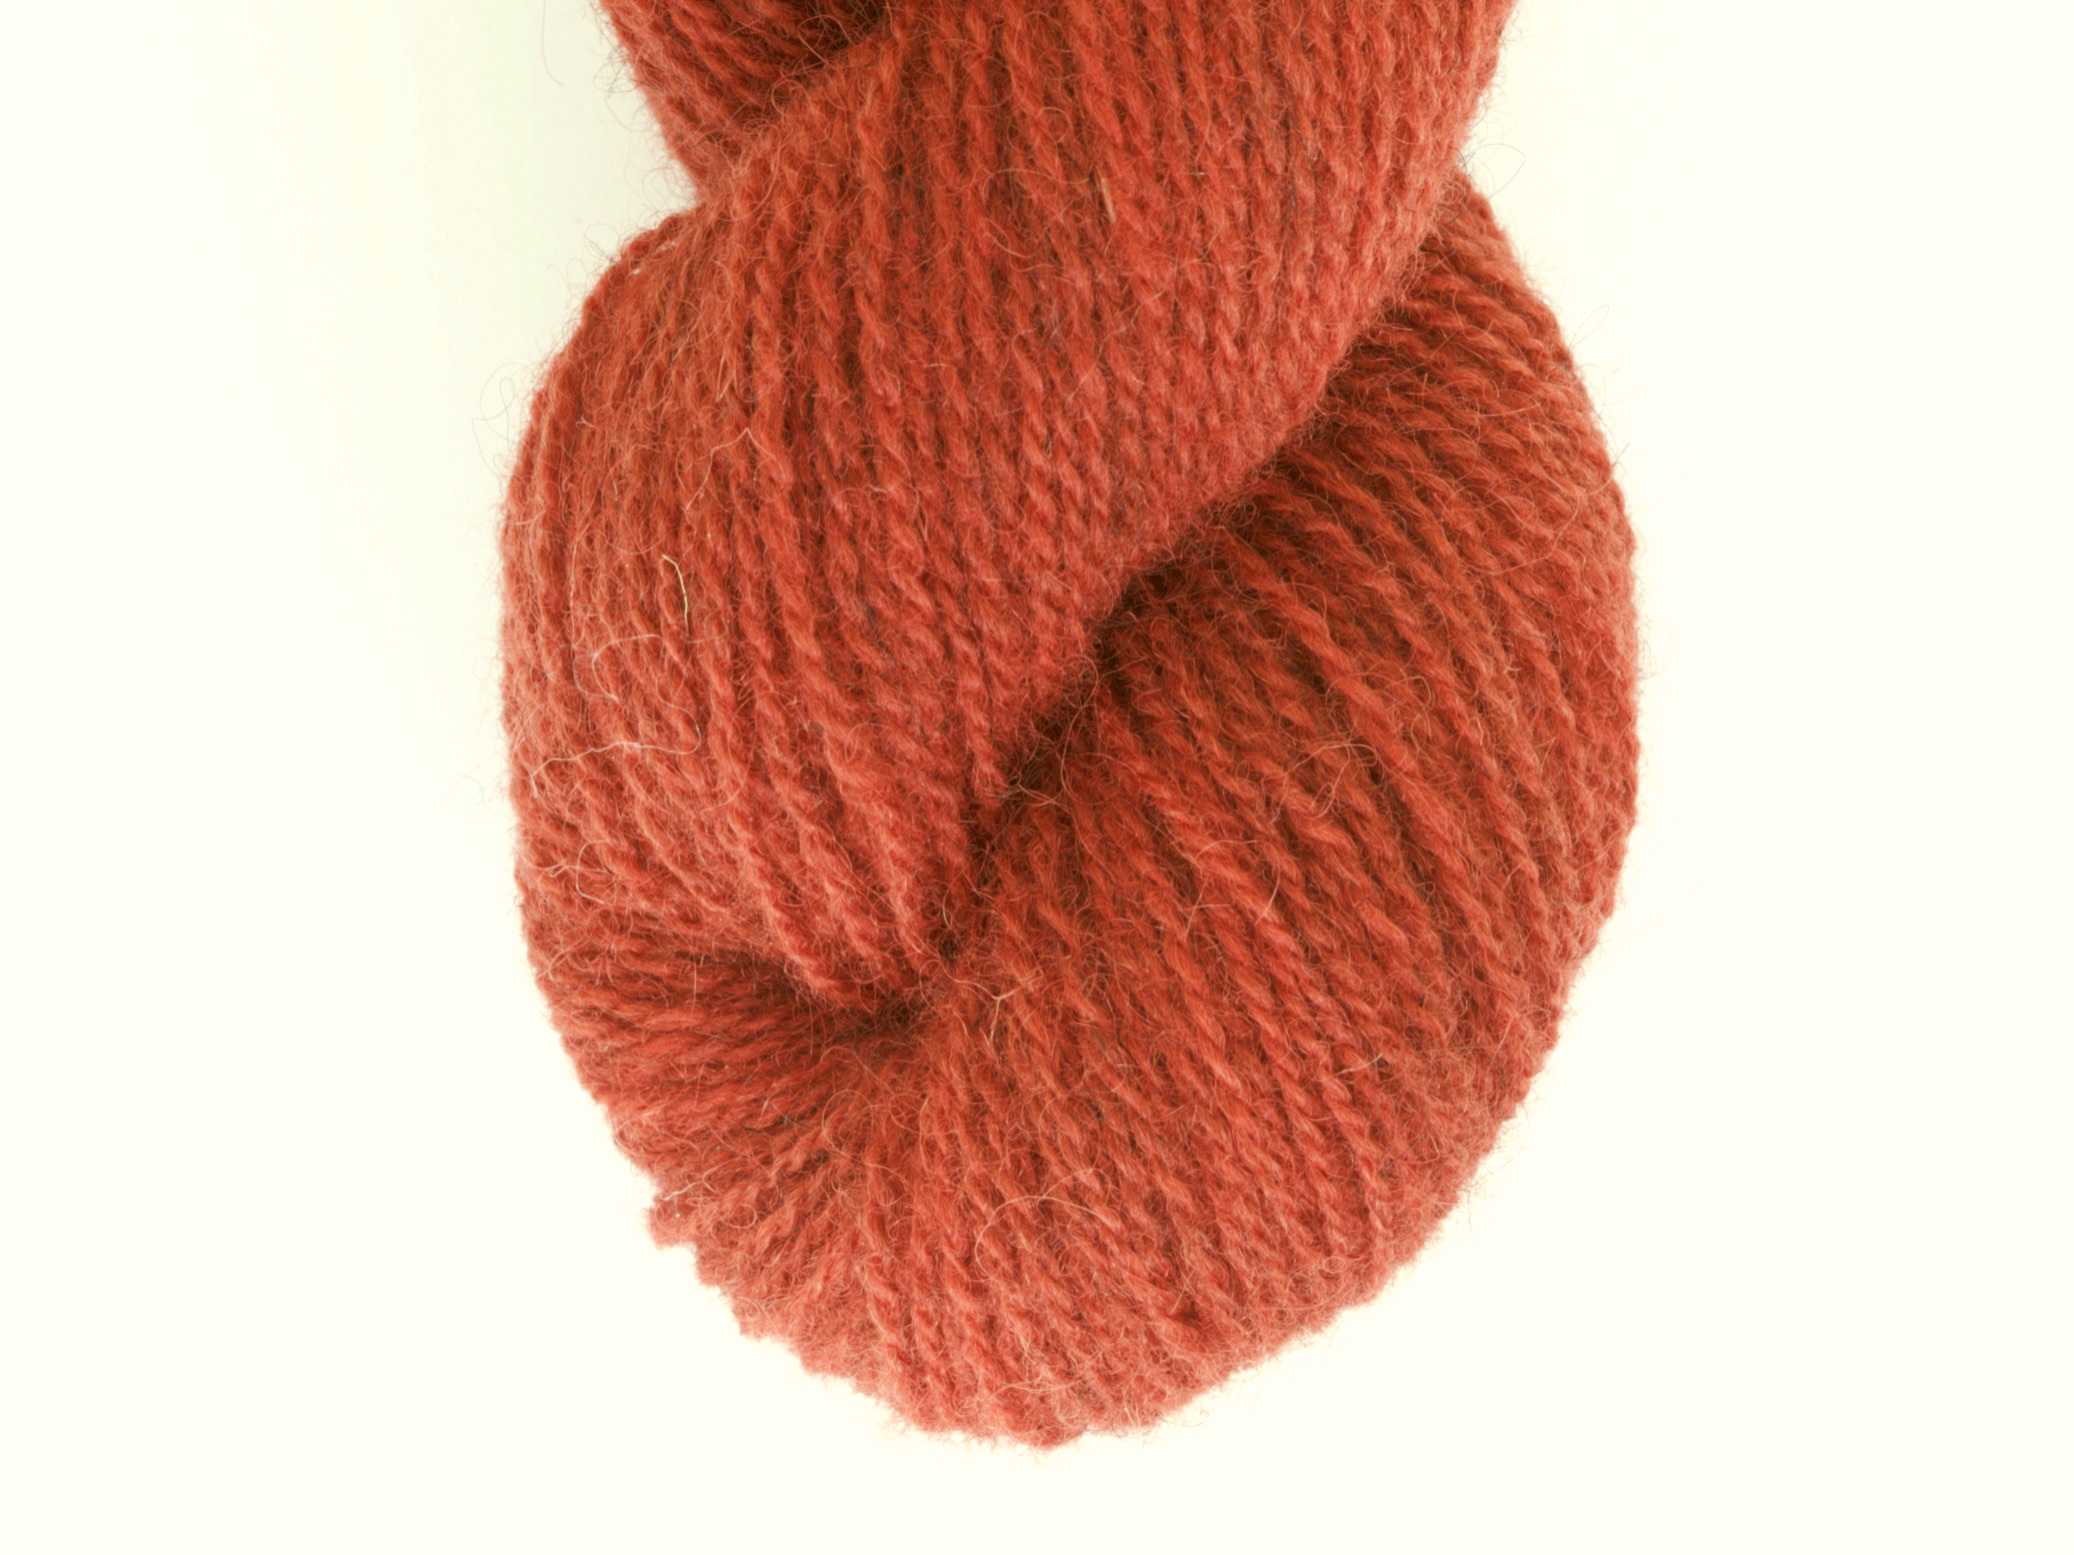 Bohus Stickning garn yarn BS 35 orange wool